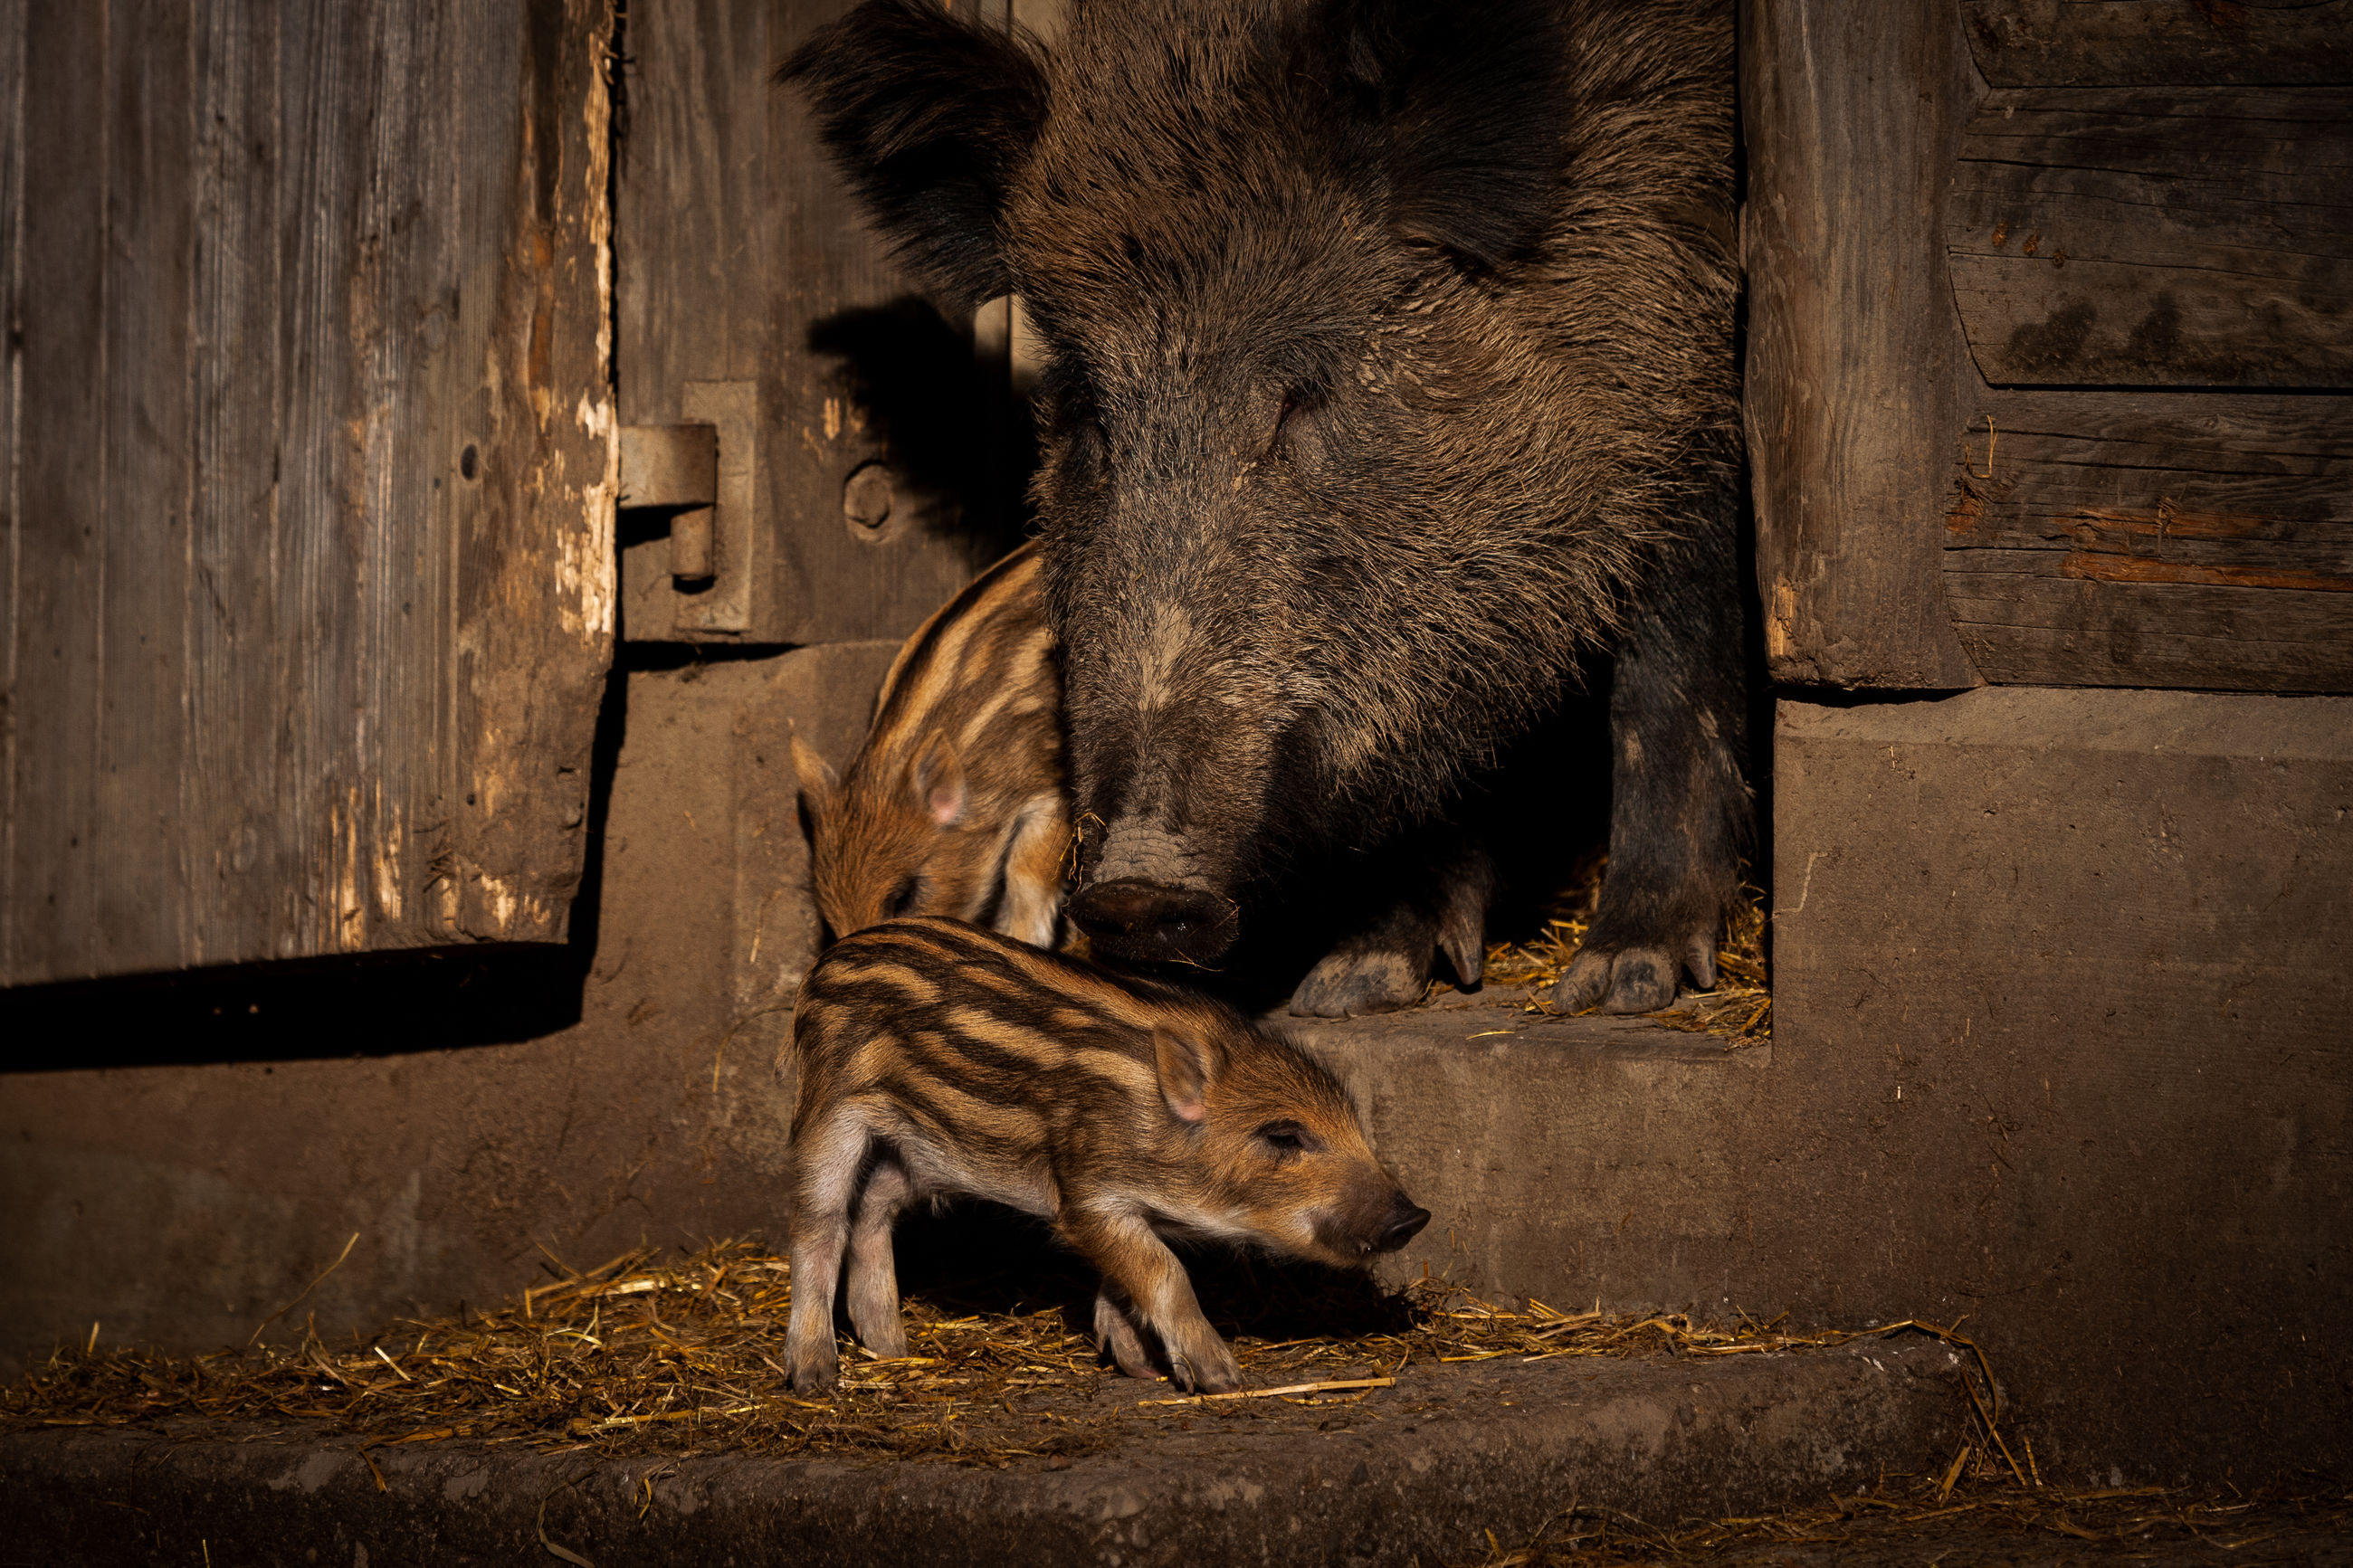 animal, animal themes, mammal, group of animals, animal wildlife, two animals, no people, animals in the wild, vertebrate, wild boar, day, young animal, outdoors, animal family, nature, brown, pig, togetherness, focus on foreground